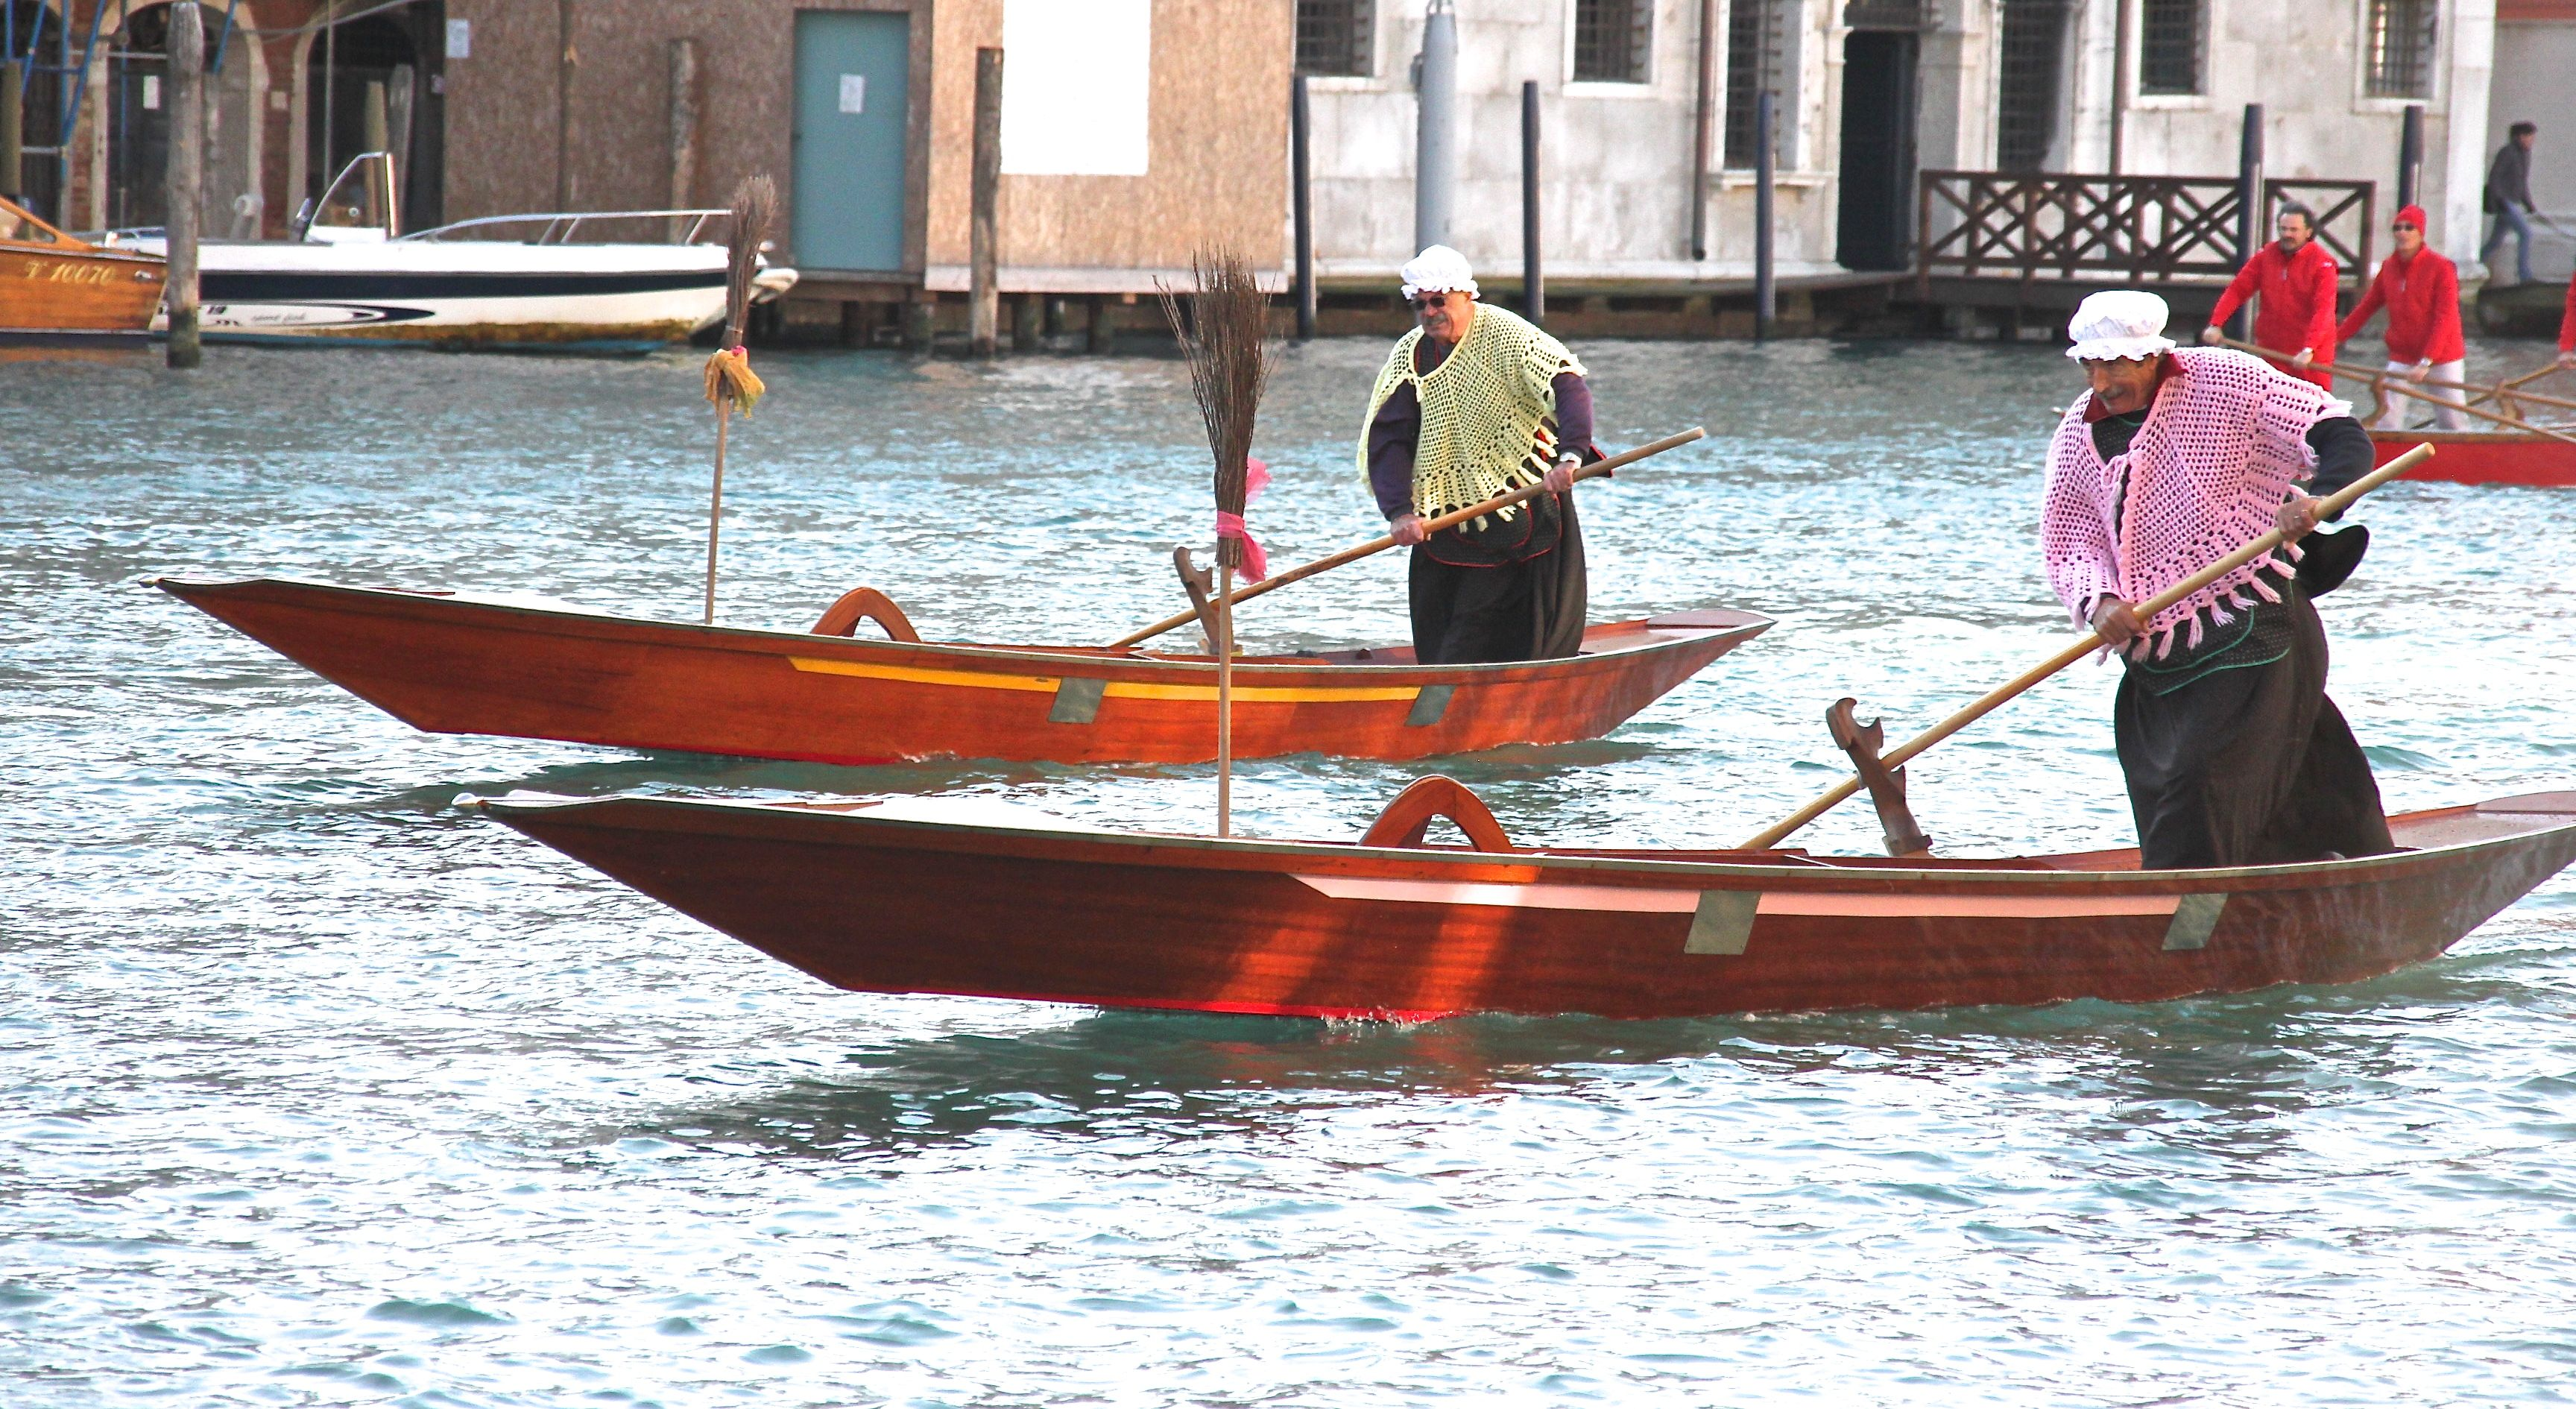 Retired Venetian rowers and gondoliers race along the Grand Canal dressed as La Befana